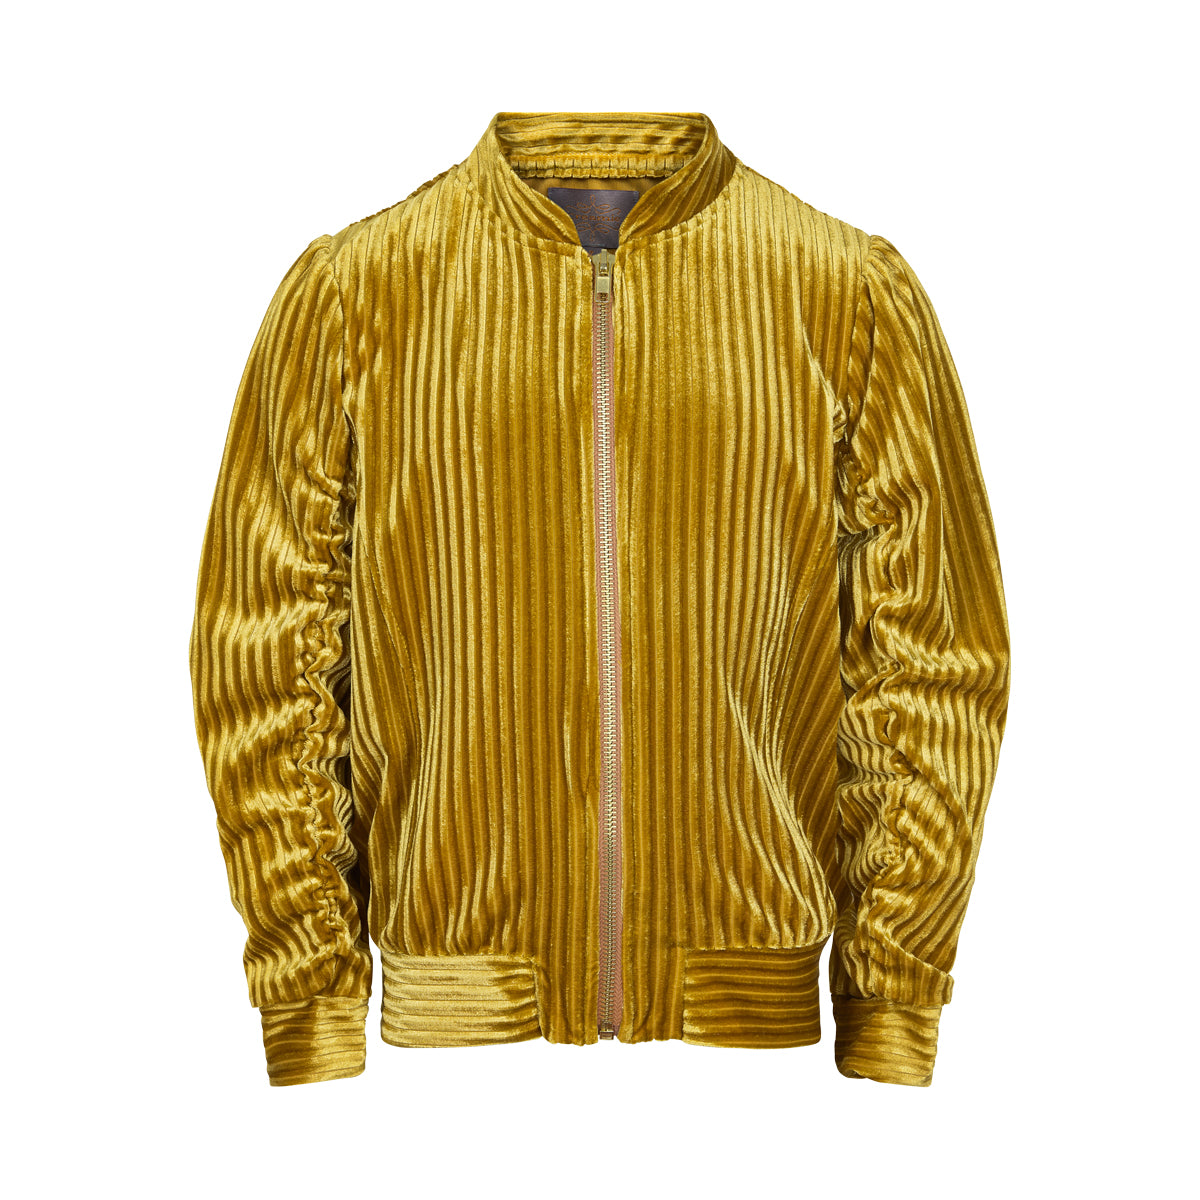 Image of   Creamie - Bomber Jacket Velvet (821262) - Harvest Gold